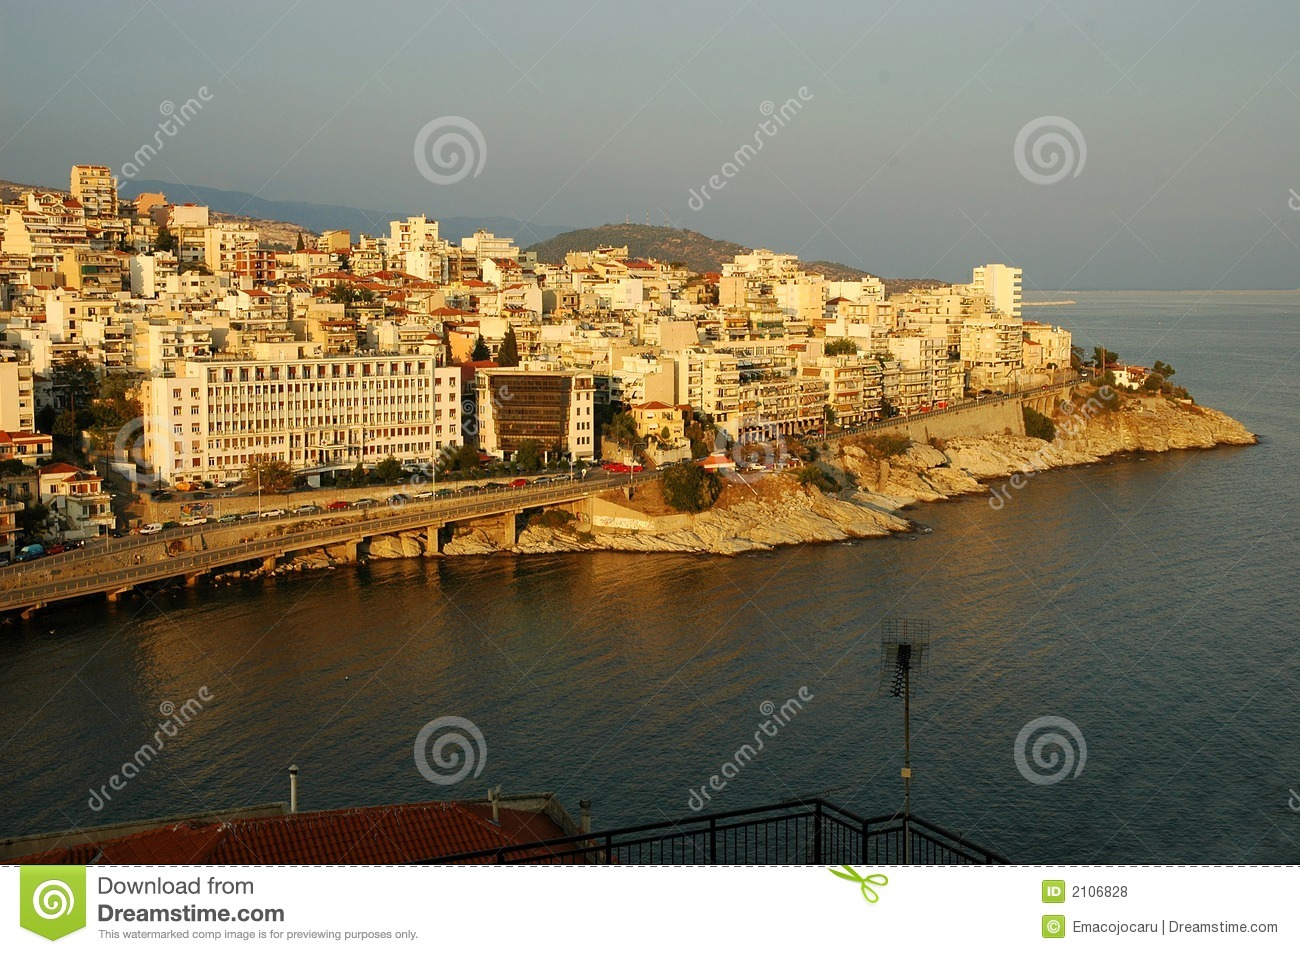 View over the town of Kavala, Greece, at sunset